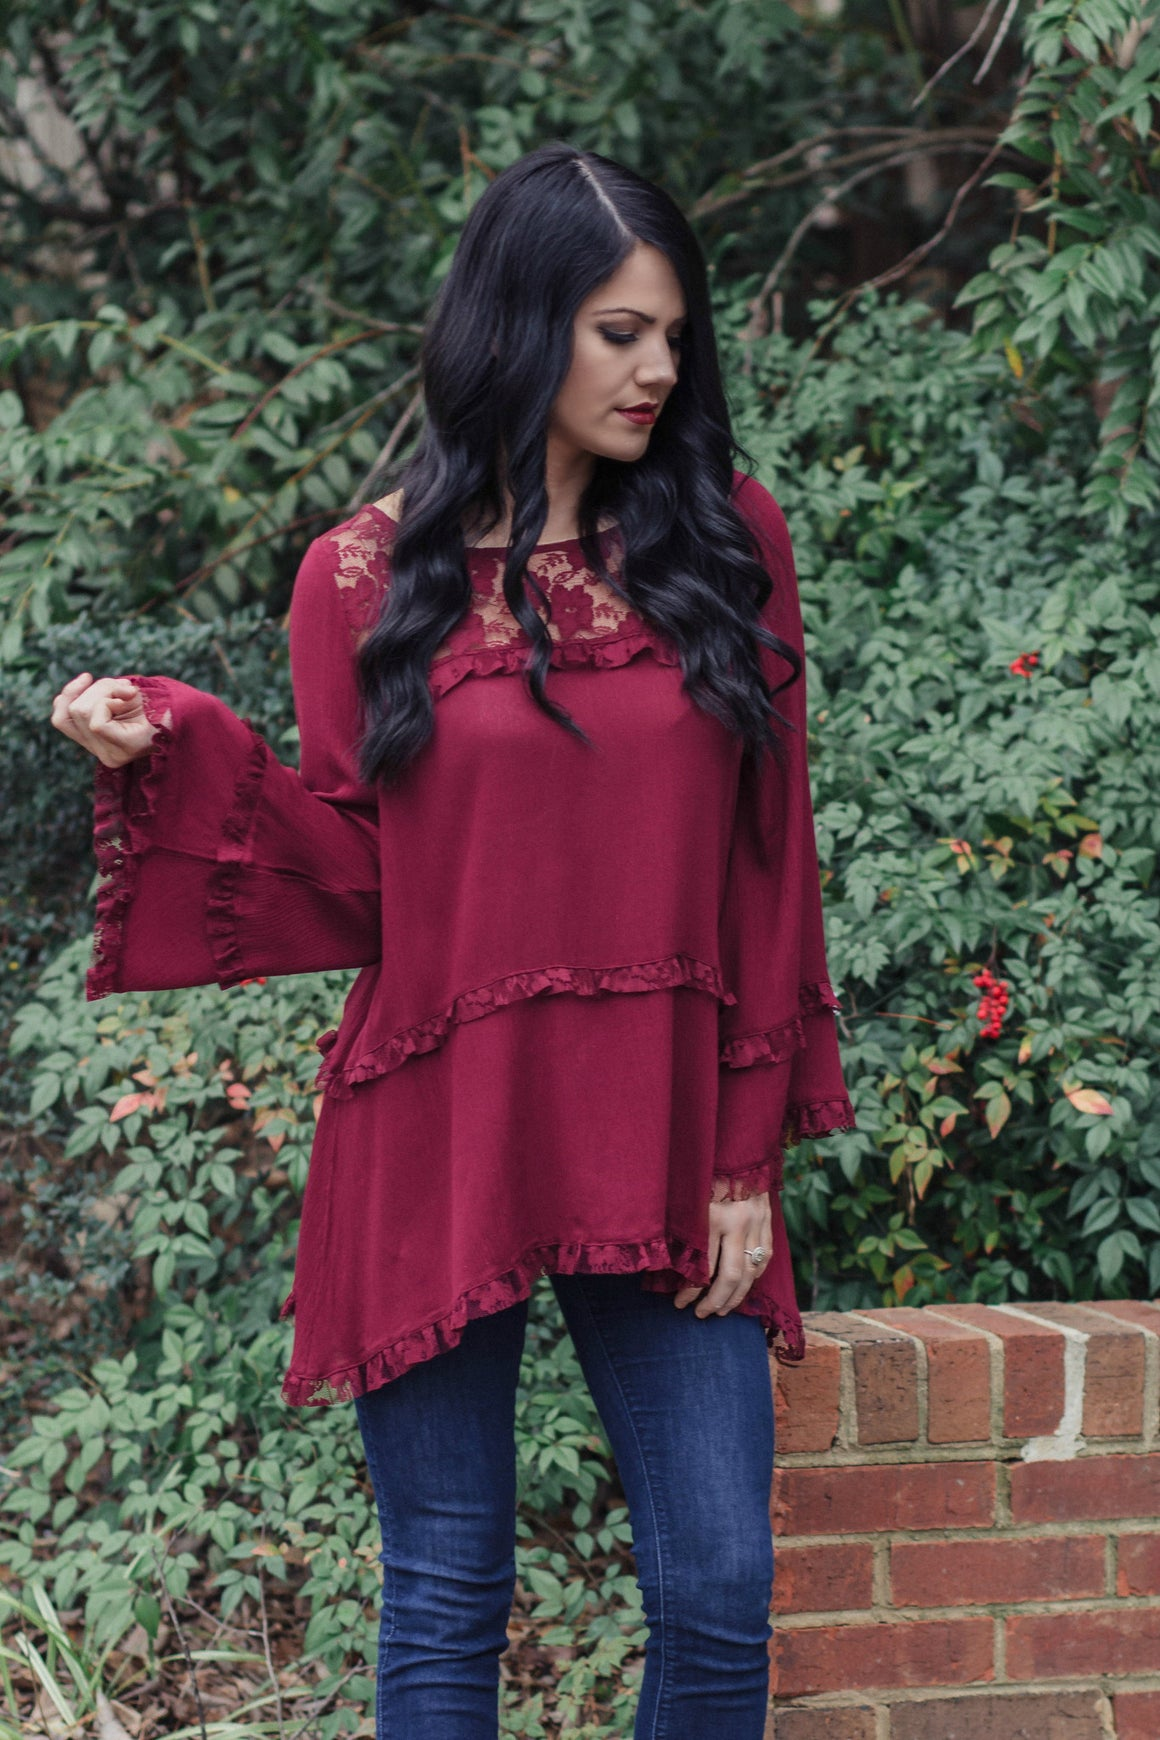 Burgundy Love Top